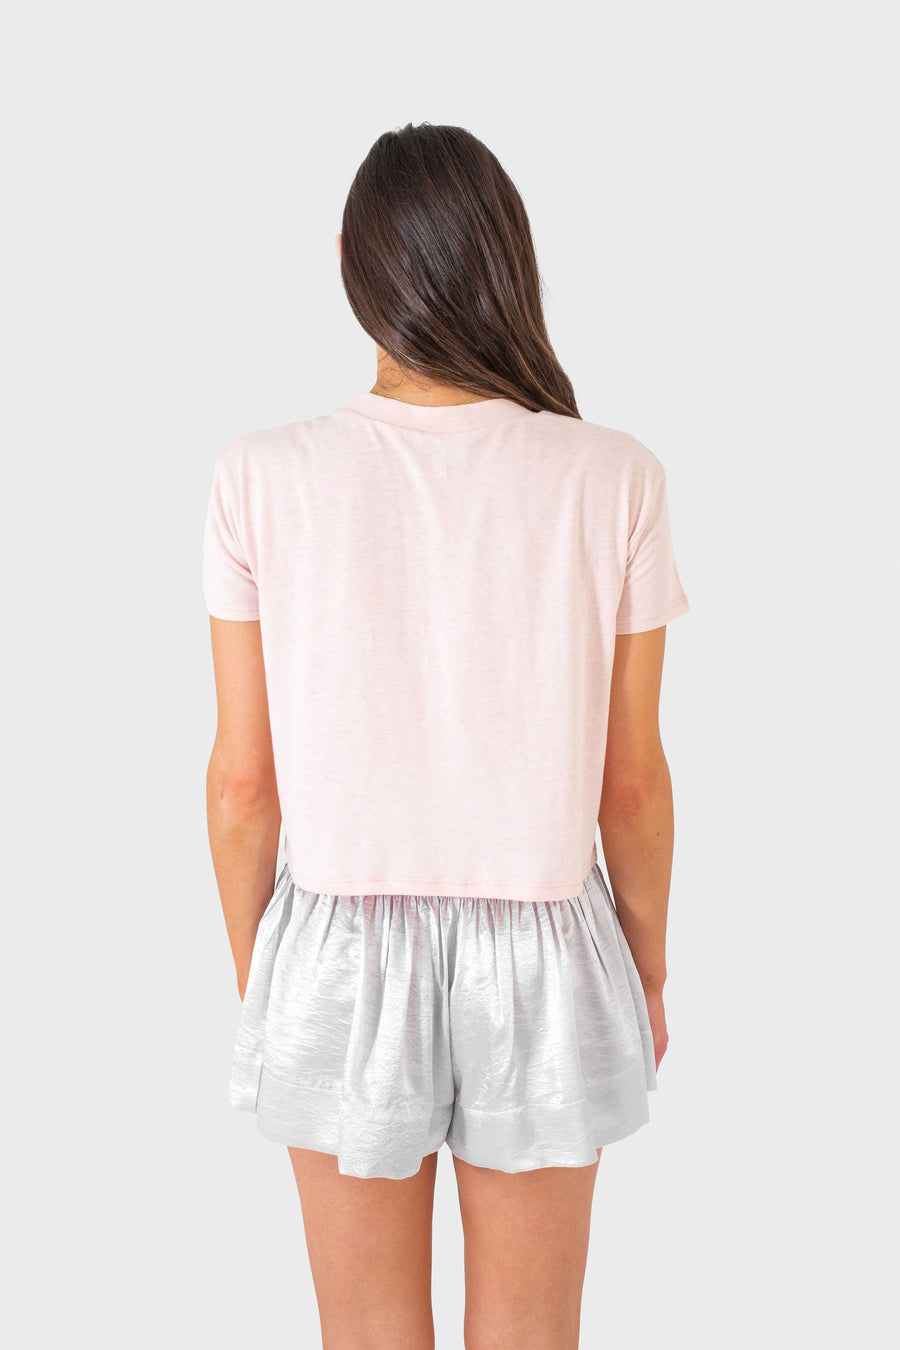 DANNIE CROPPED T-SHIRT PALE PINK W/ STARS